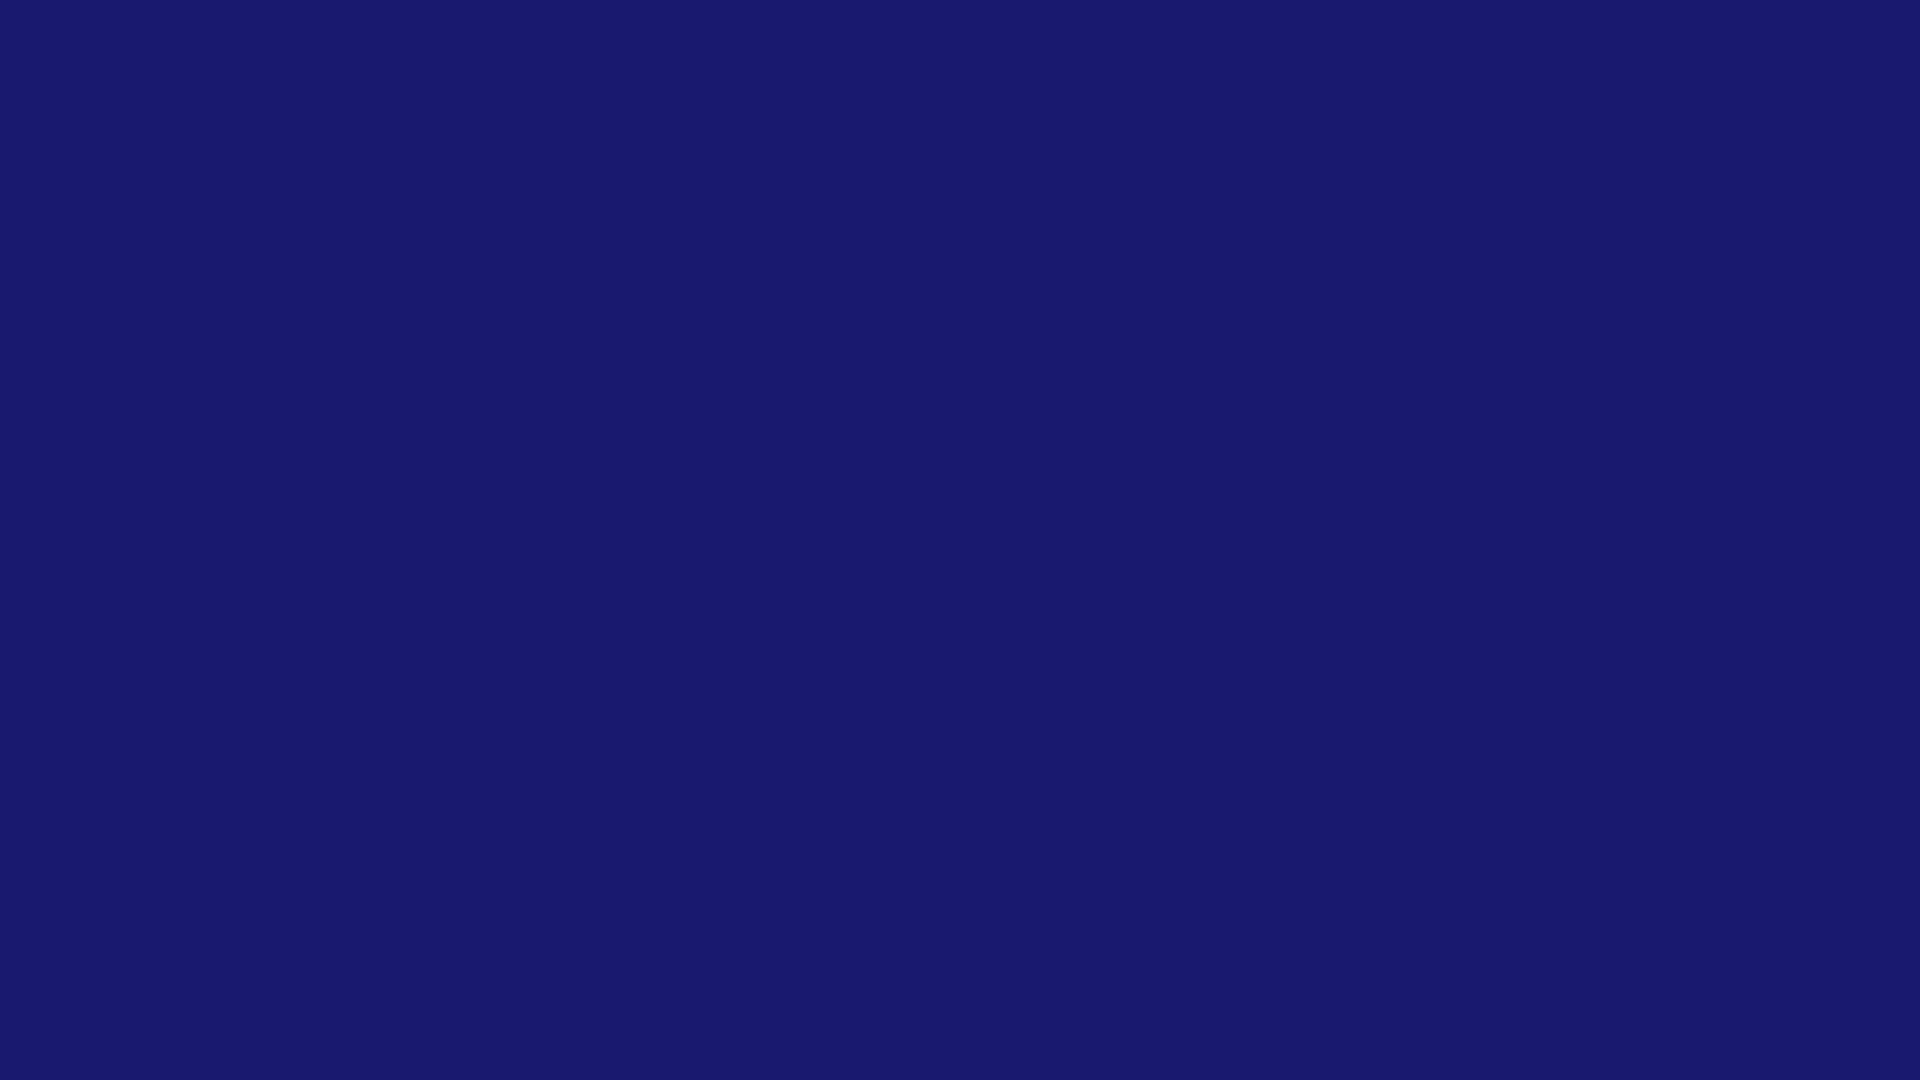 1920x1080 Midnight Blue Solid Color Background